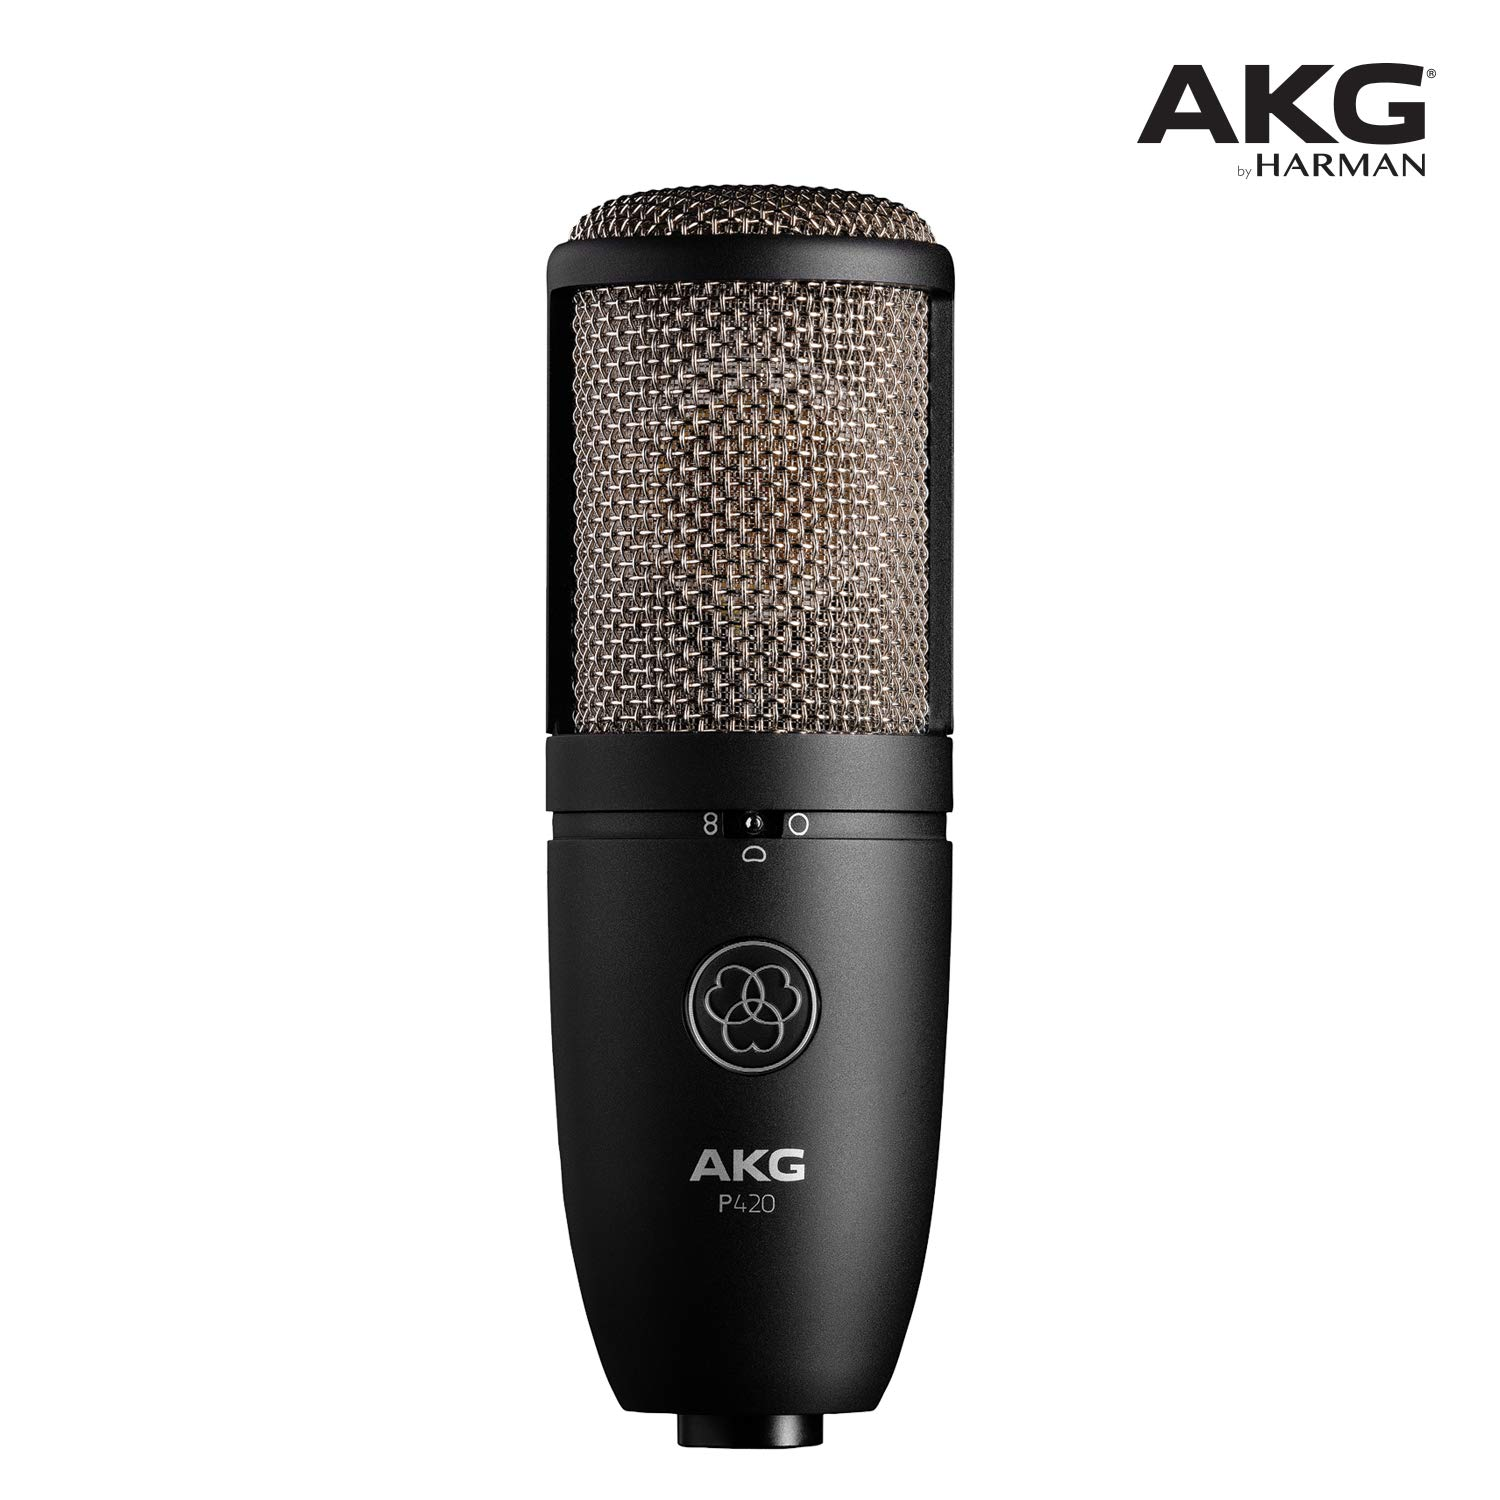 Top 10 Best Chinese Microphones Reviews in 2020 7